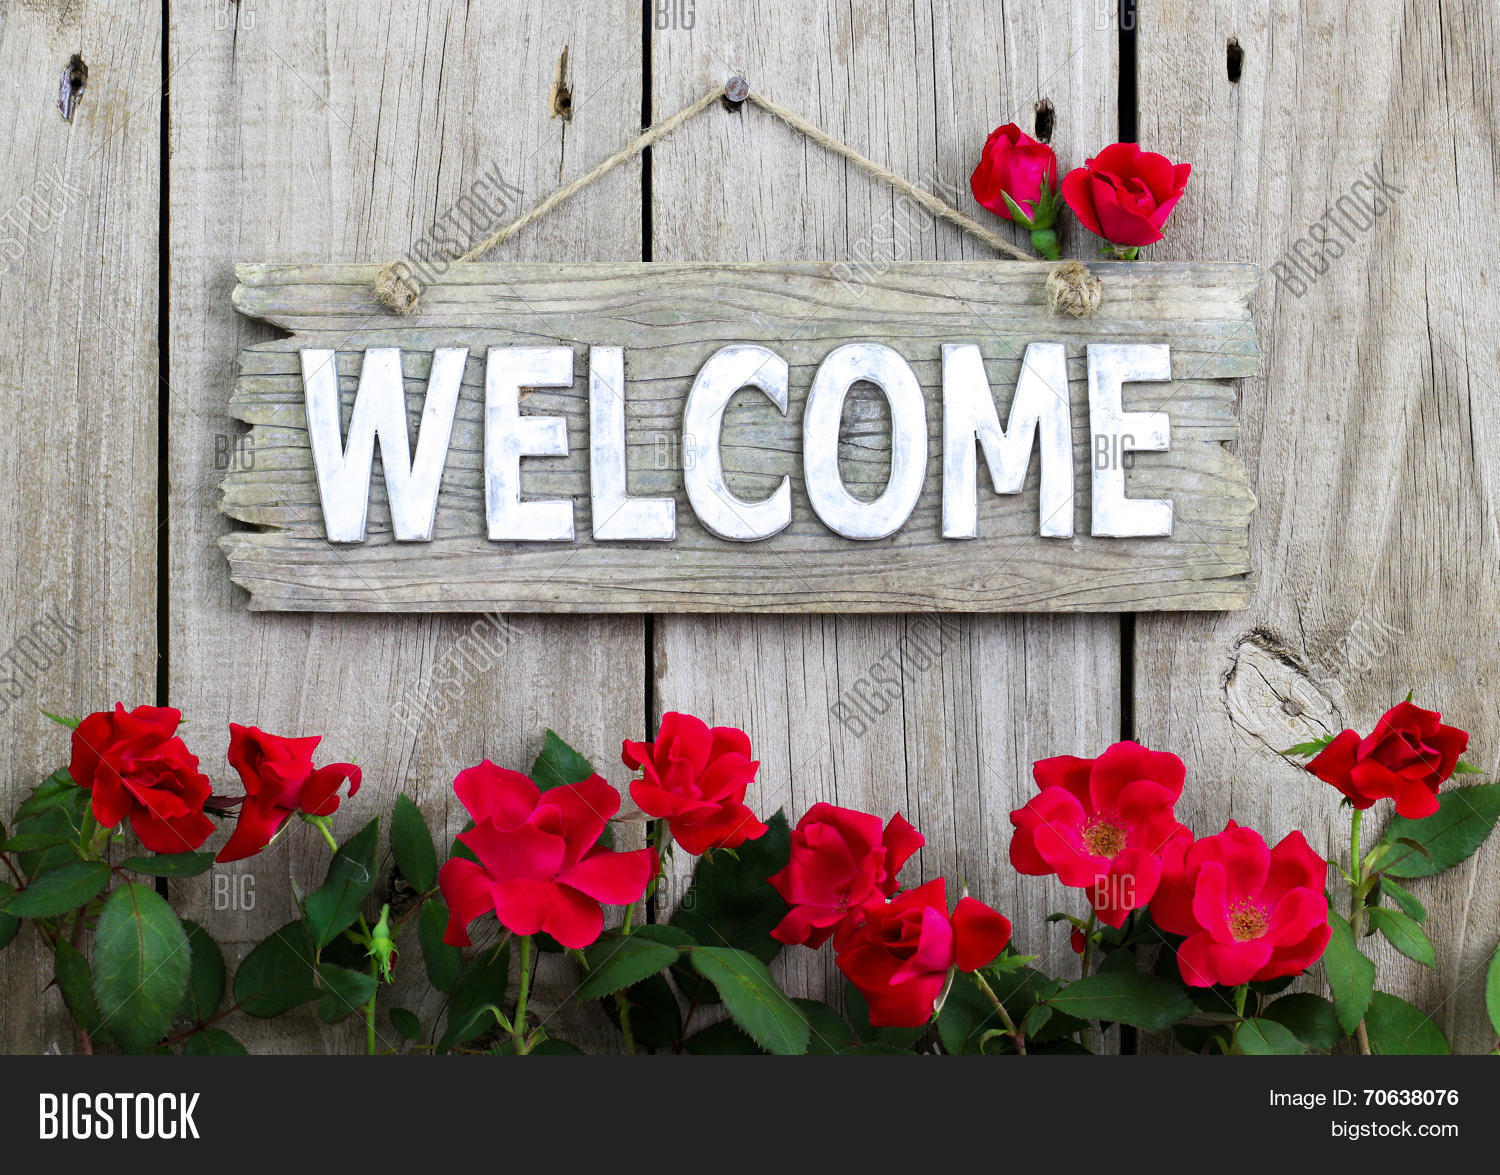 Welcome pictures with roses